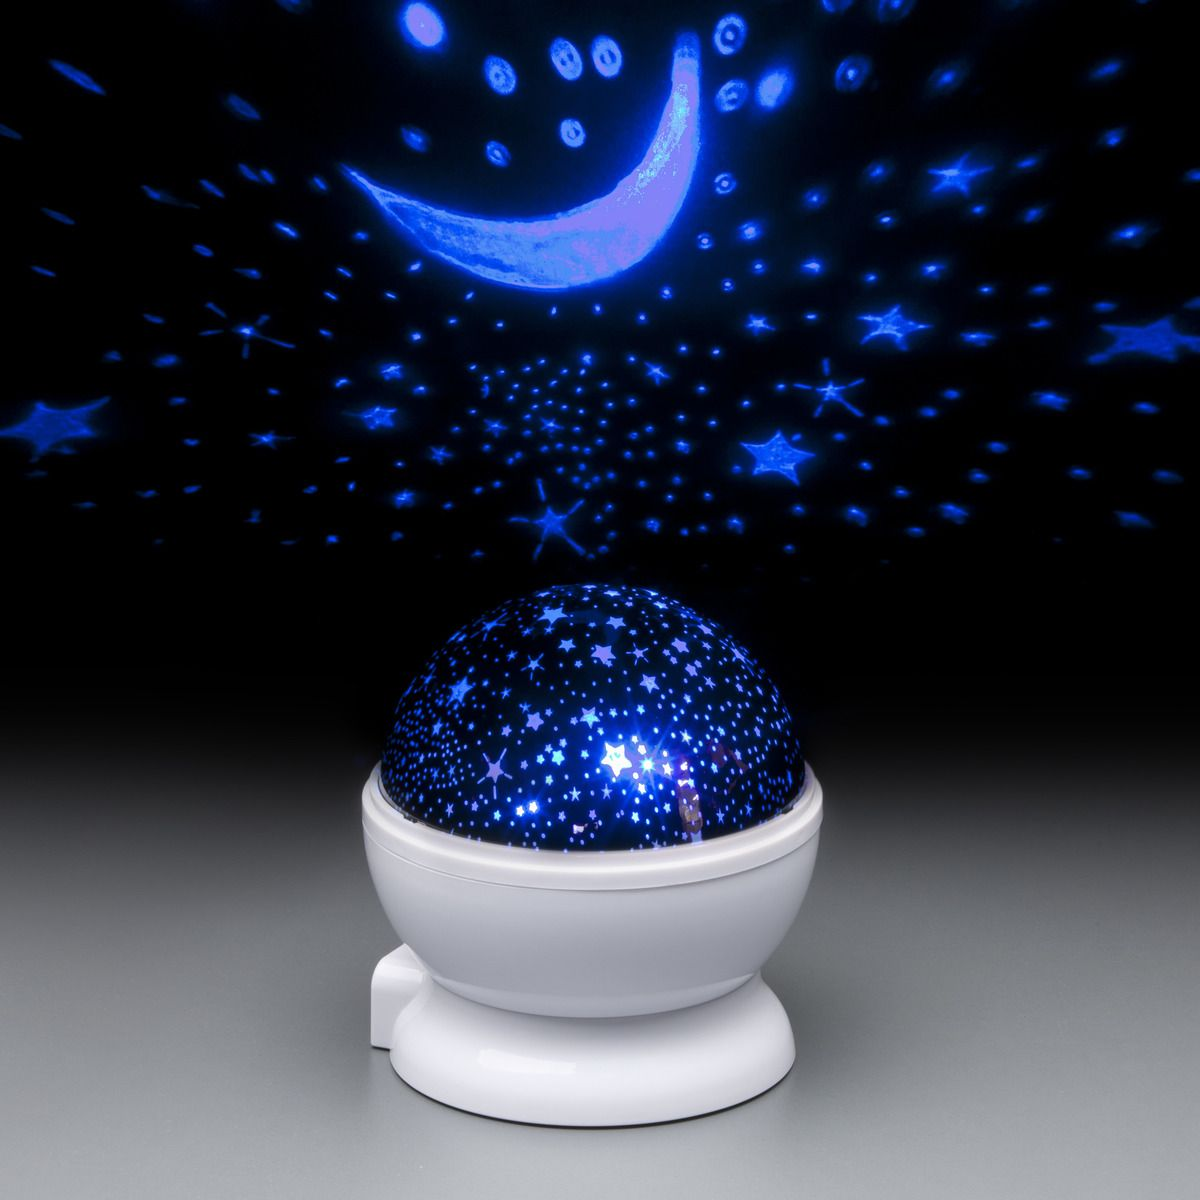 Rotating Star Light Projector Star Projector Light Star Lights Bedroom Night Light Projector